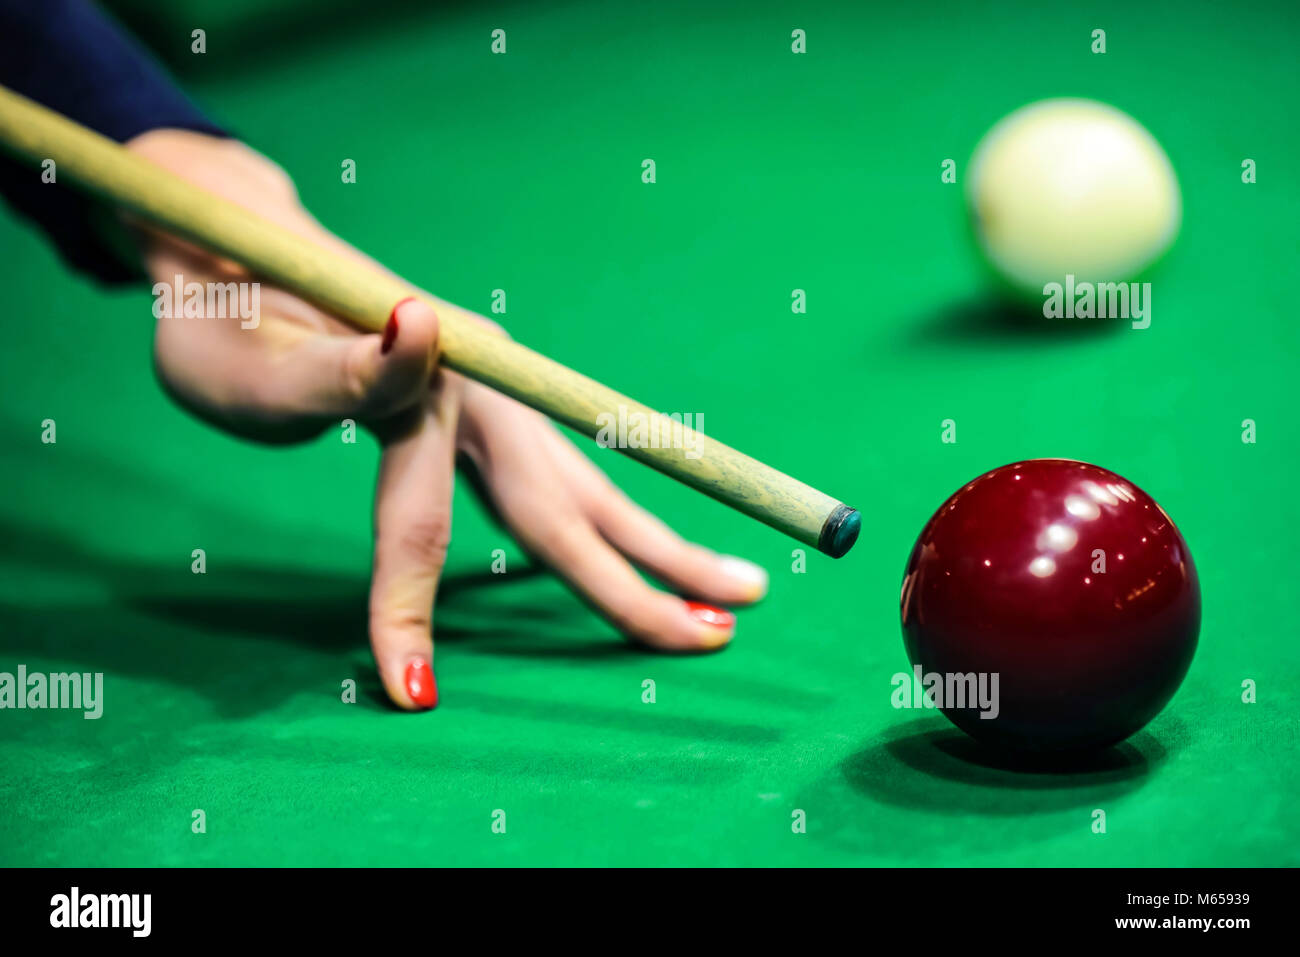 Woman's hand with cue playing pool - Stock Image